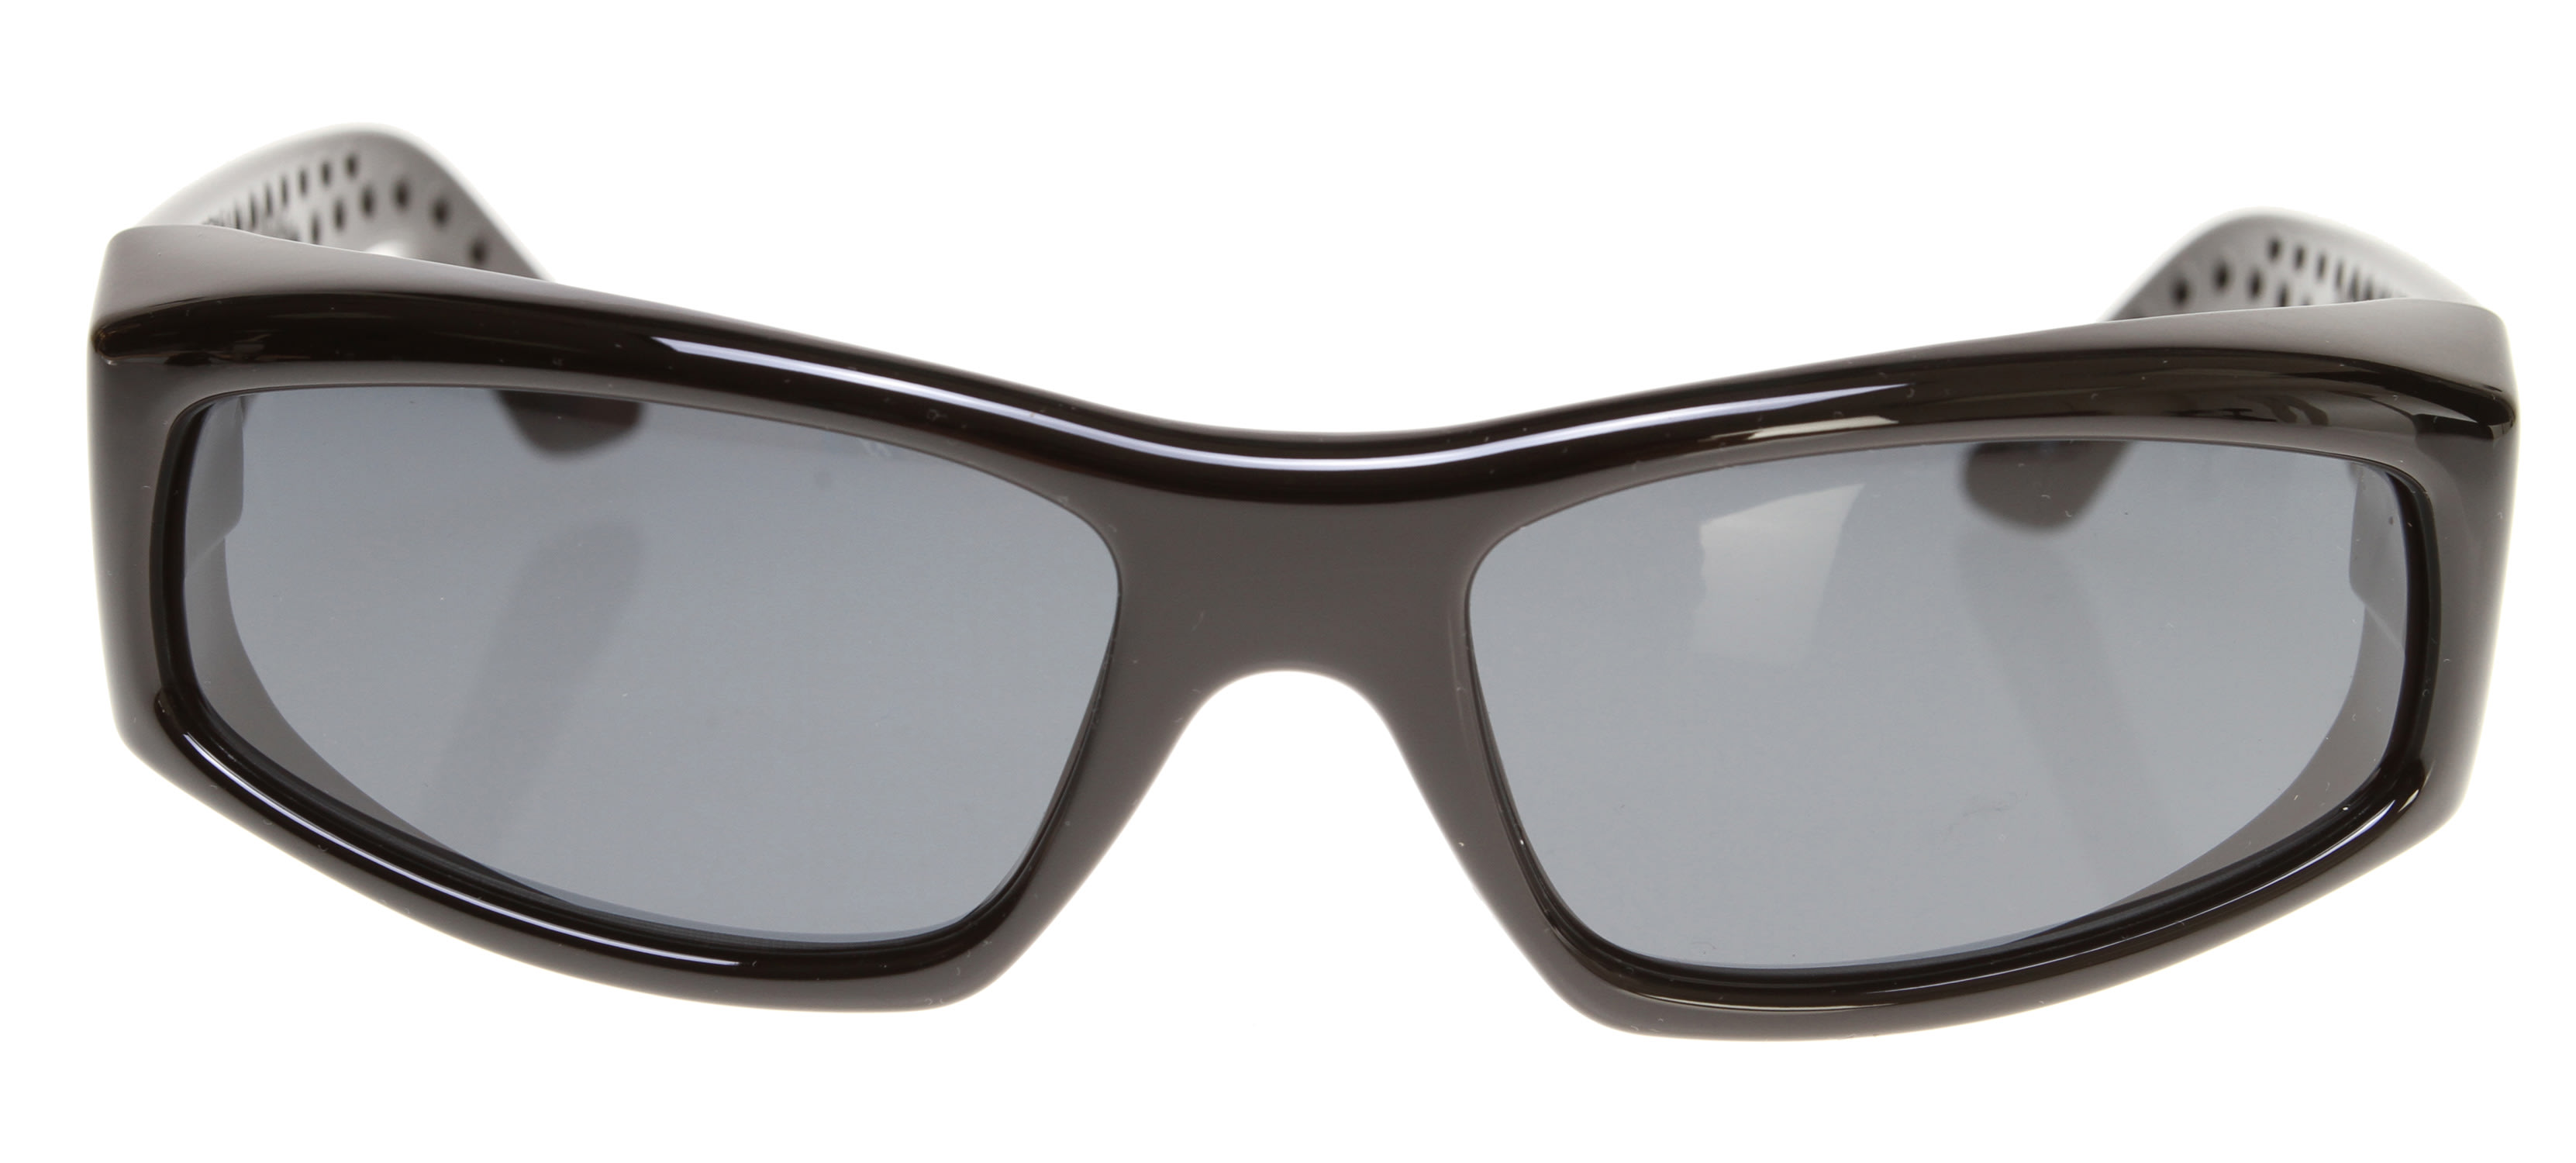 50e830ba9d438 Spy MC Sunglasses - thumbnail 3